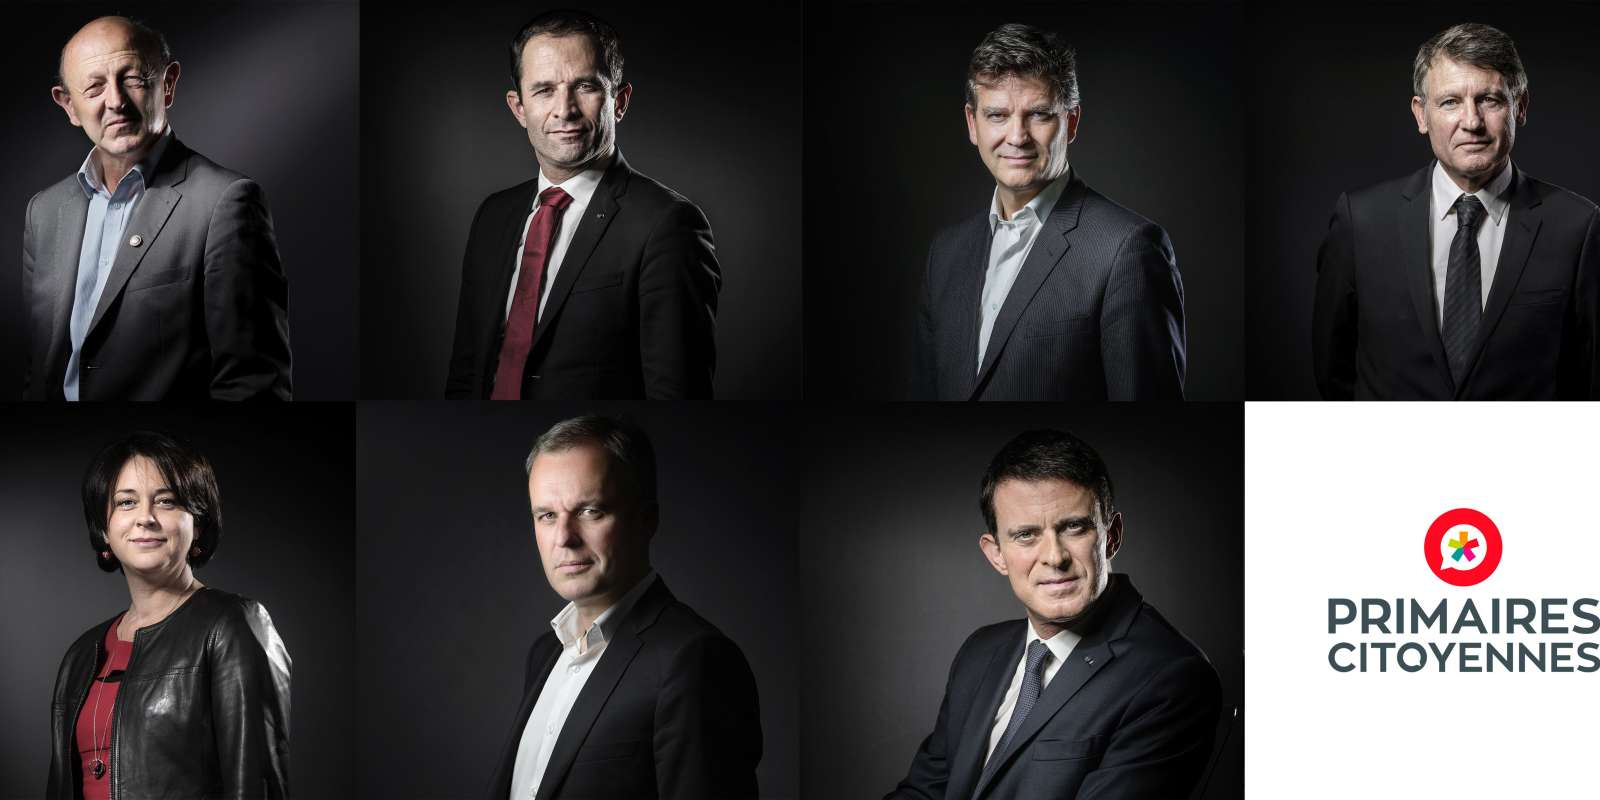 A combination of portraits made on January 9, 2017 shows the candidates for France's left-wing primaries ahead of the 2017 presidential election, (from top L) President of the Democratic Front (Front Democrate) Jean-Luc Bennahmias, Socialist Party (PS) member of Parliament and former Education minister Benoit Hamon, PS former Economy minister Arnaud Montebourg, PS former Education minister Vincent Peillon, (from bottom L) President of the Radical Left Party (PRG) Sylvia Pinel, founder of the new Ecology party